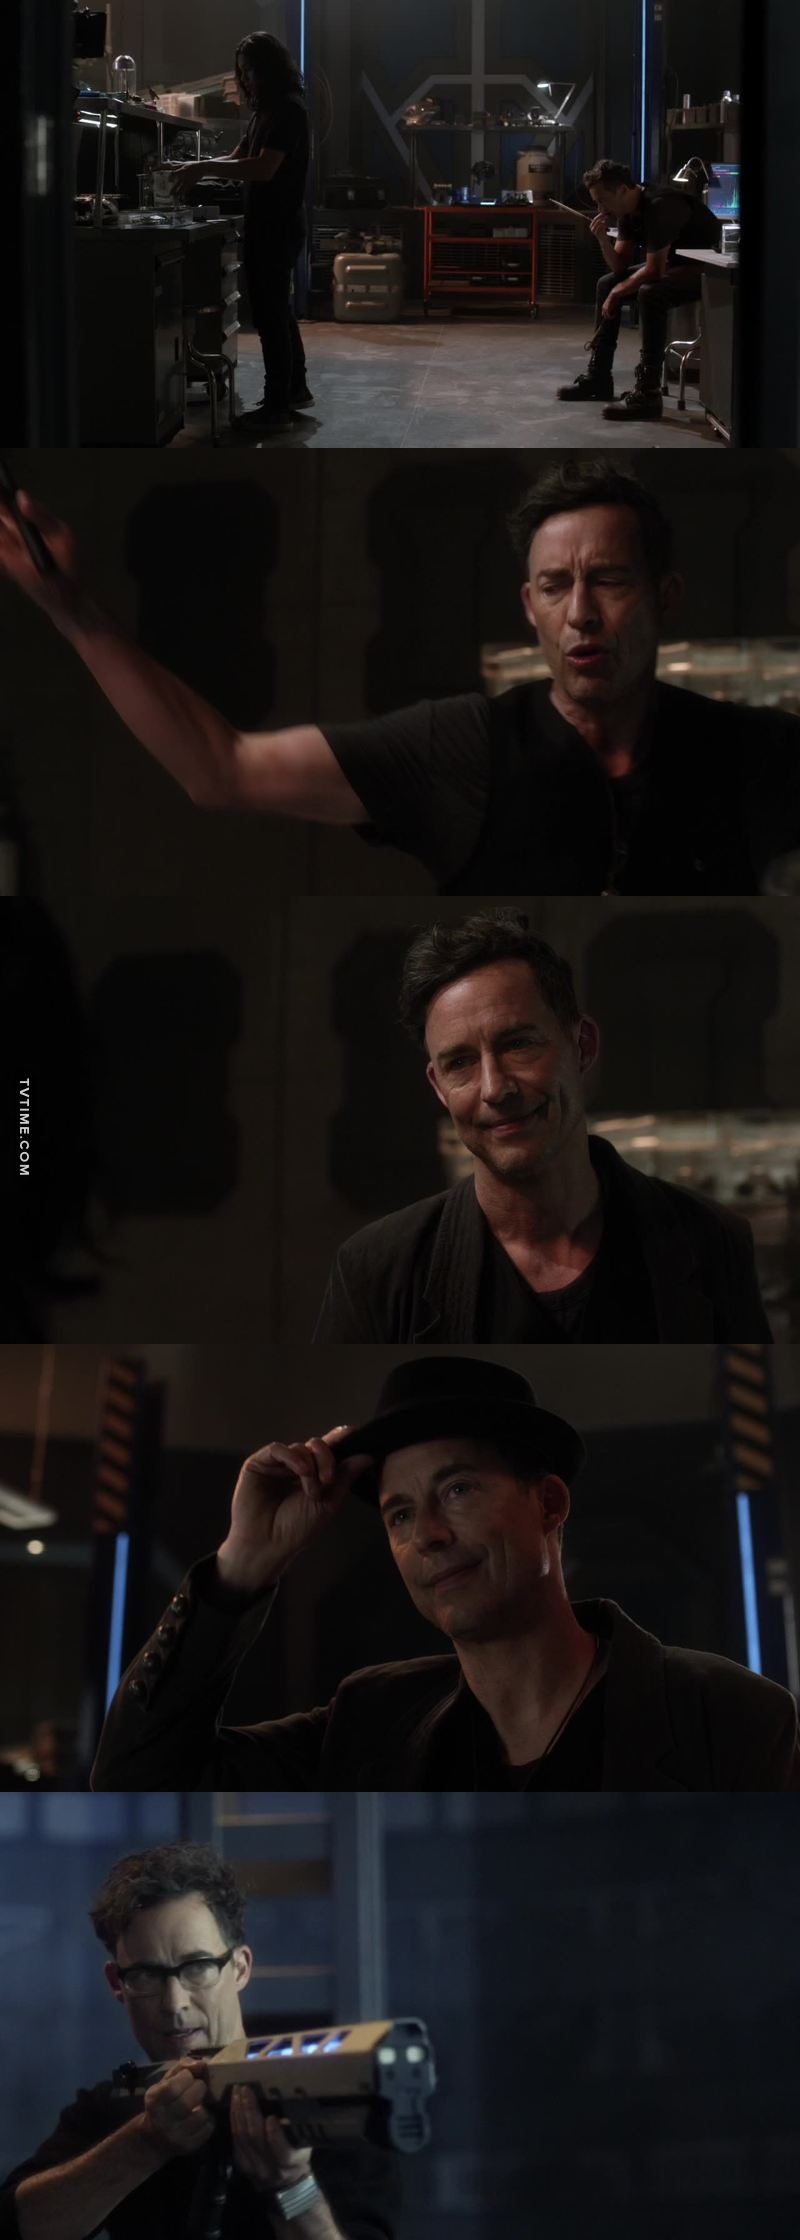 A moment to appreciate Tom's acting of earth 19 and earth 2 Wells as well.....the range of expressions